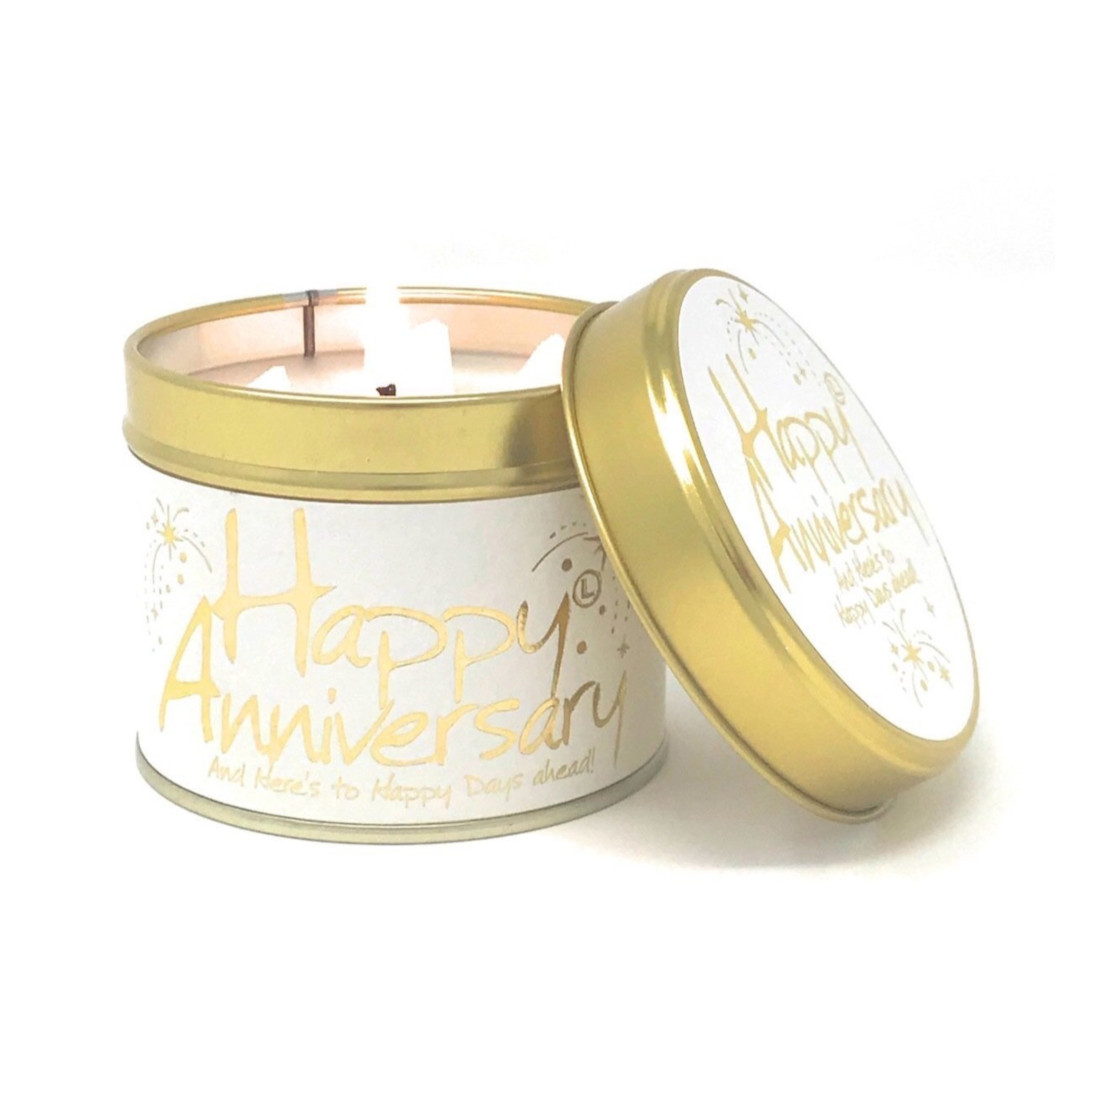 Lily Flame Happy Anniversary Scented Tin Candle